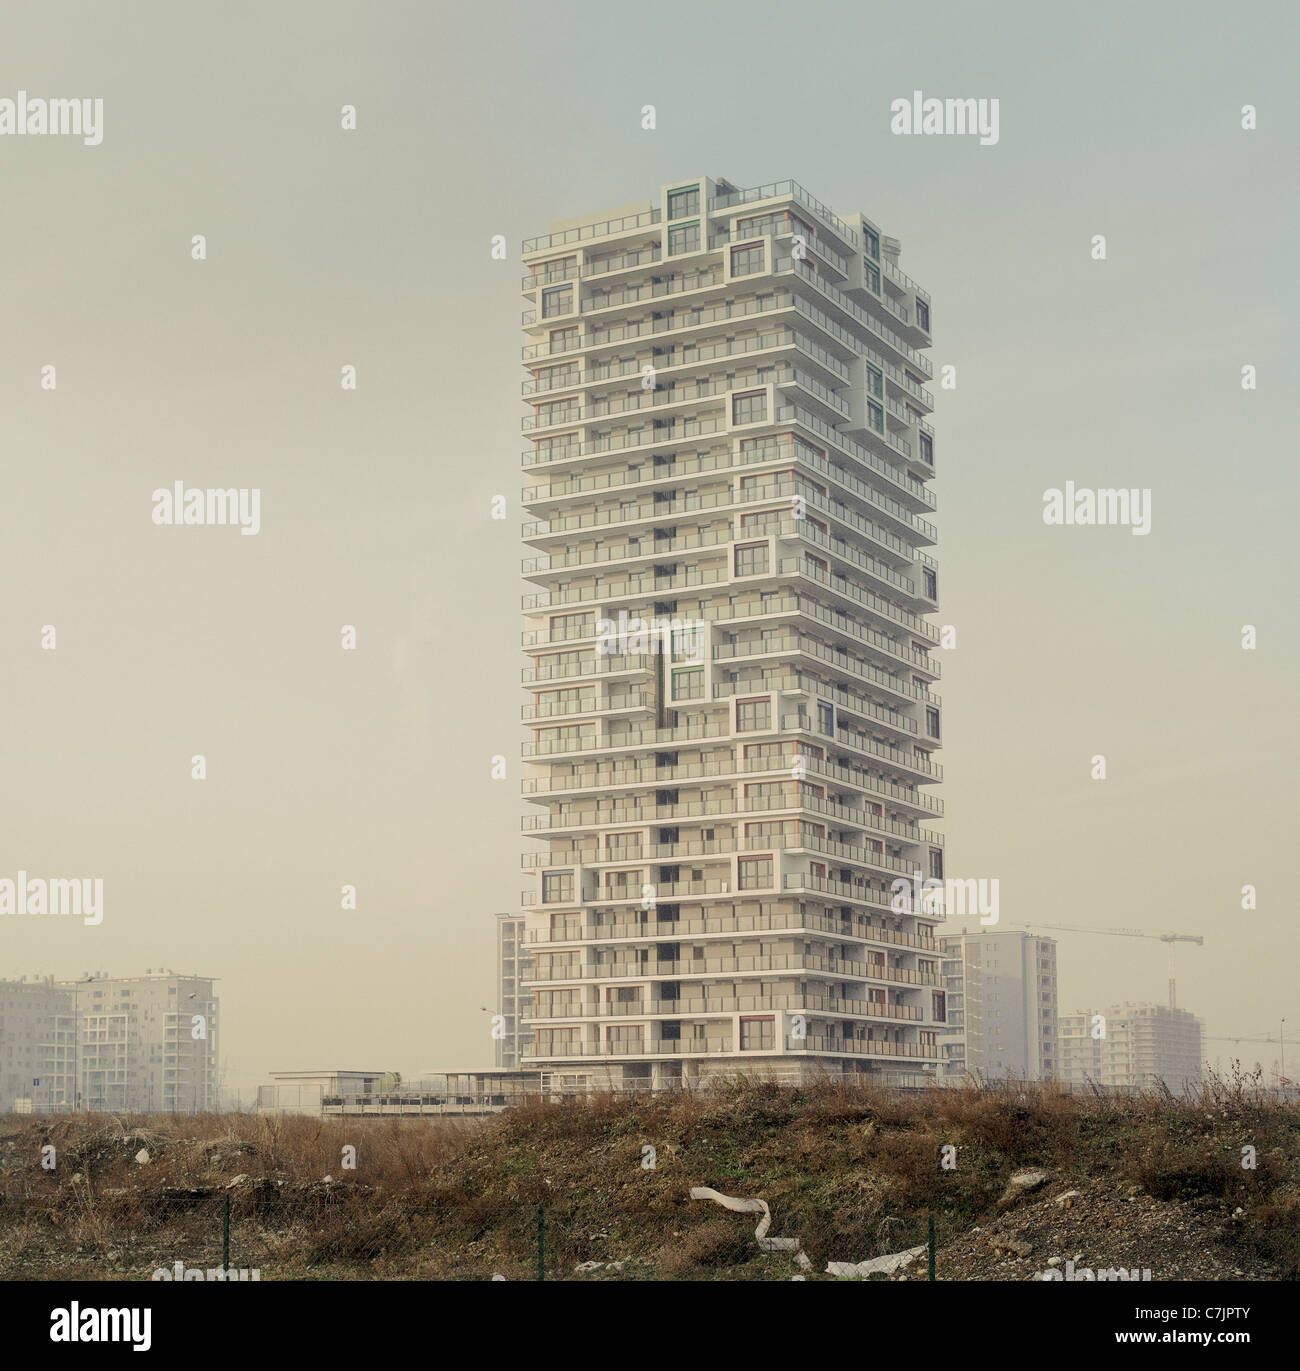 High-rise apartment building - Stock Image